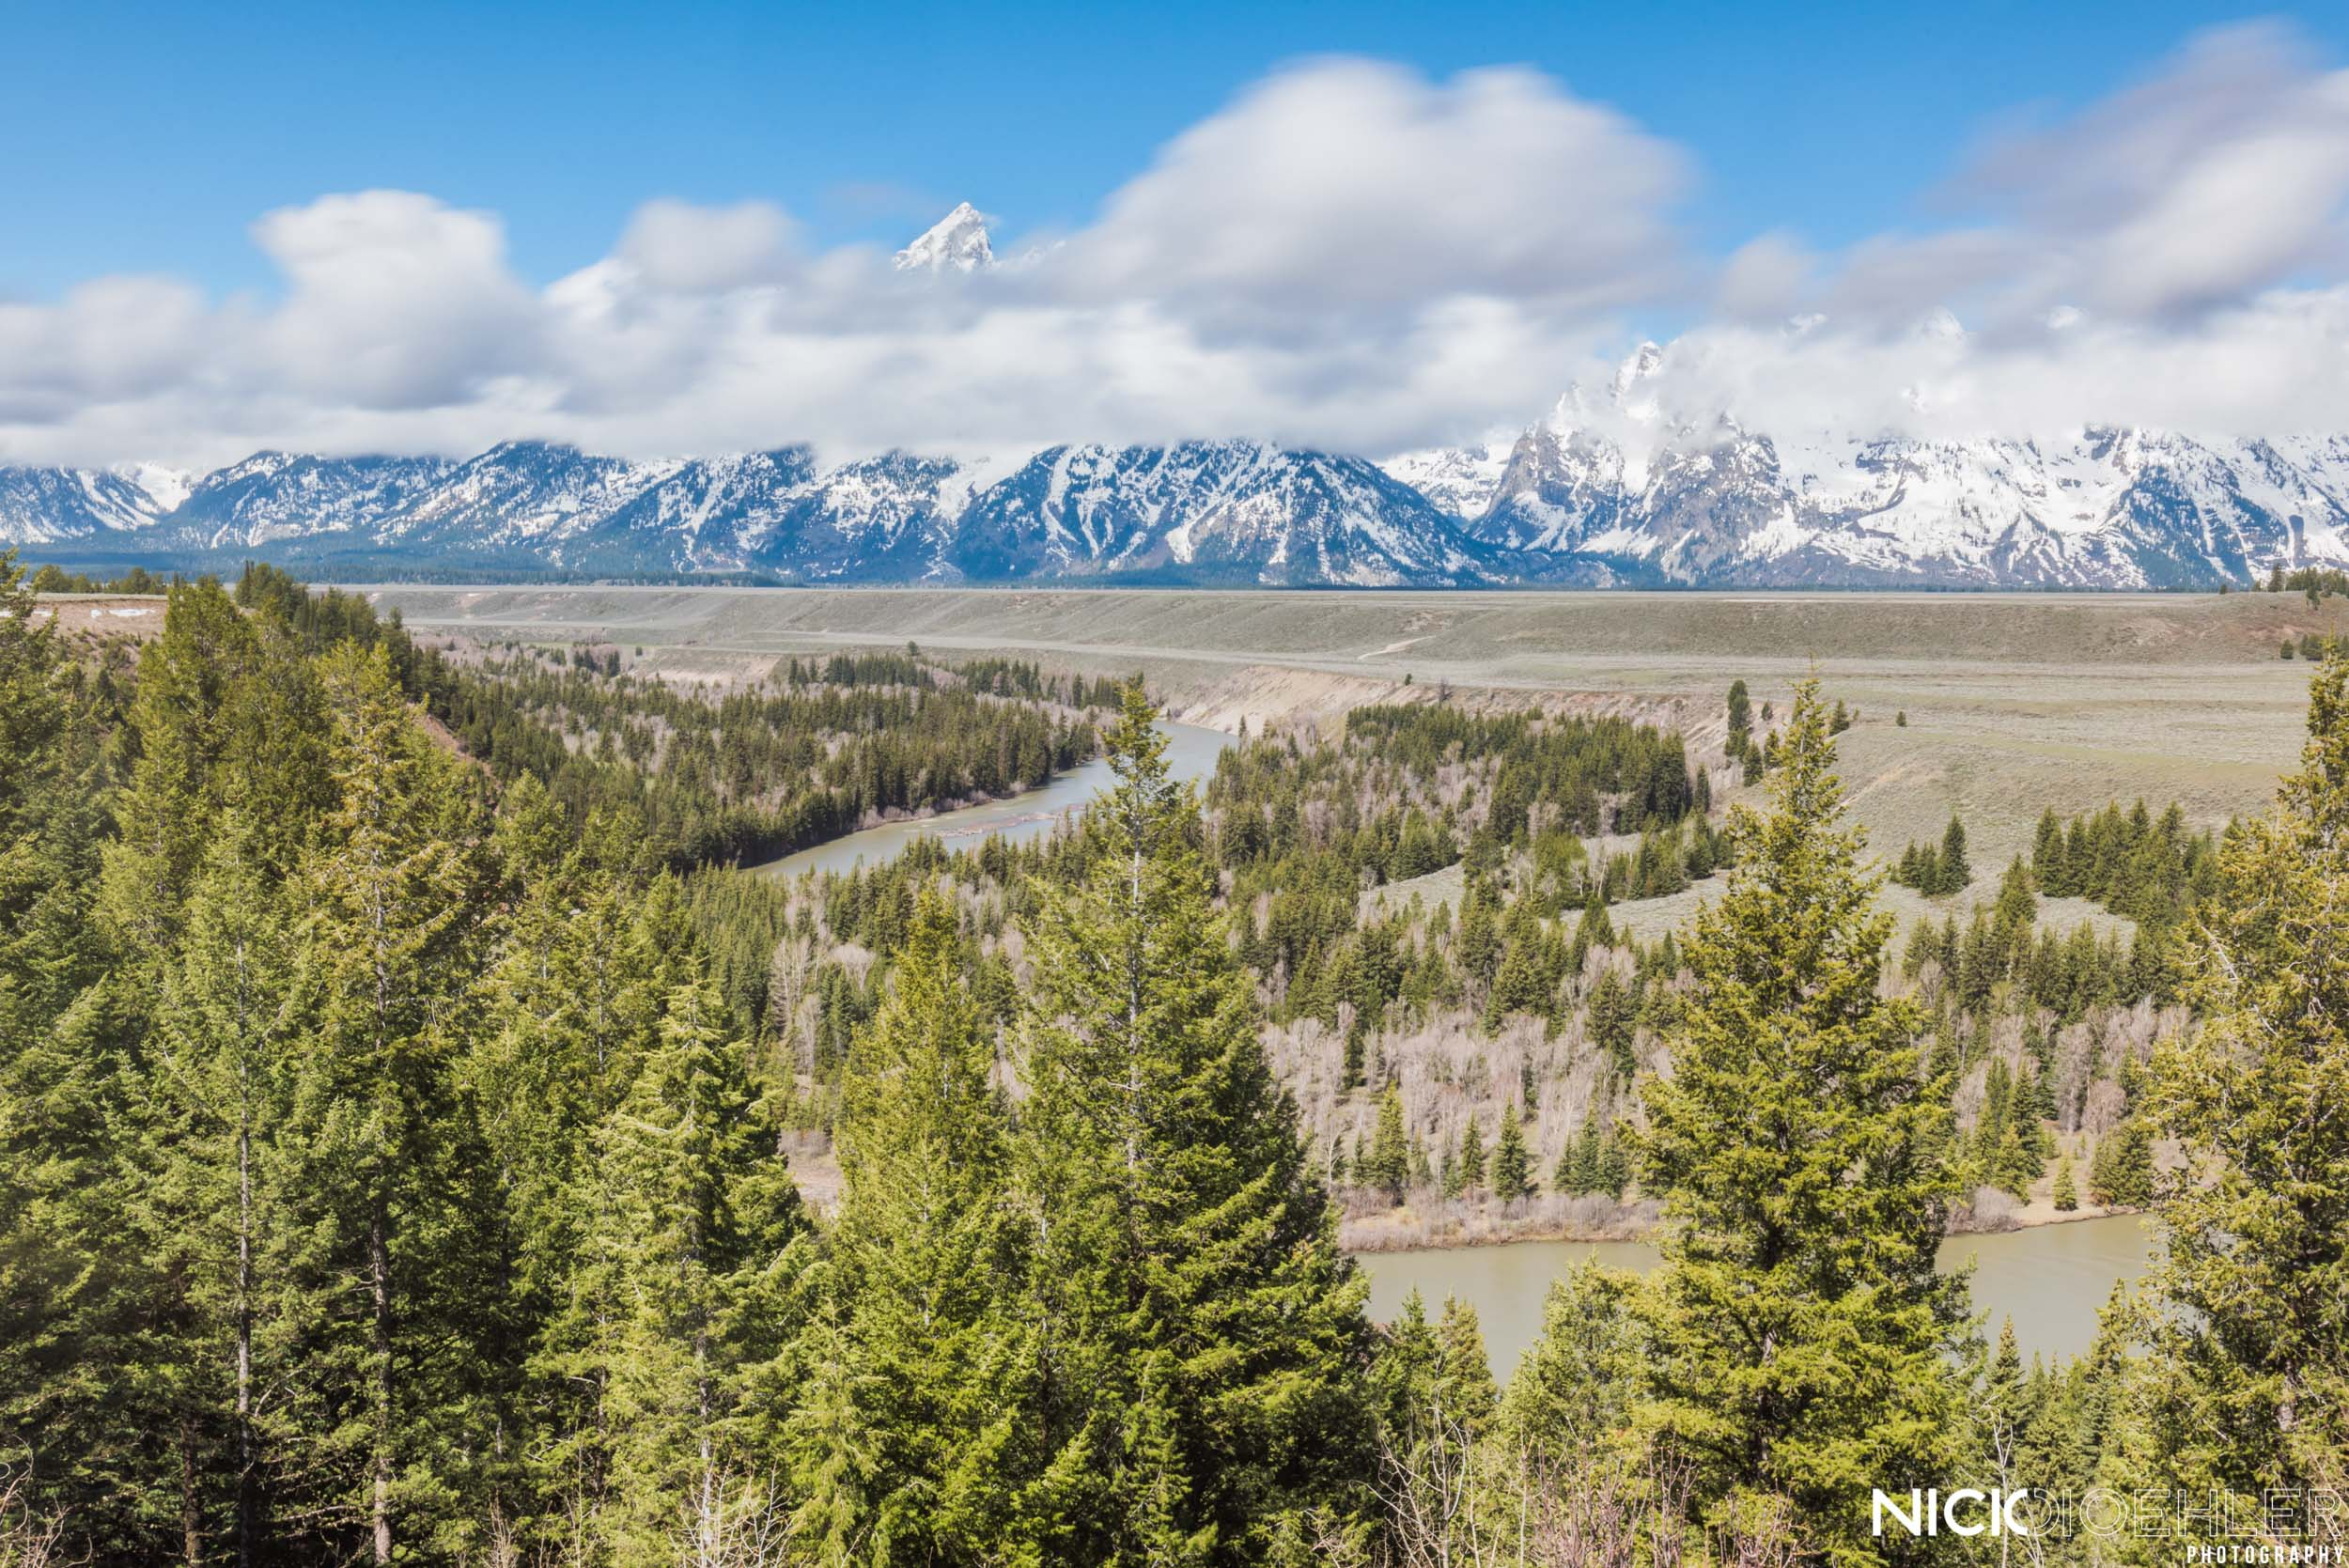 Grand Teton National Park: Experiencing the Teton's from a classic spot.